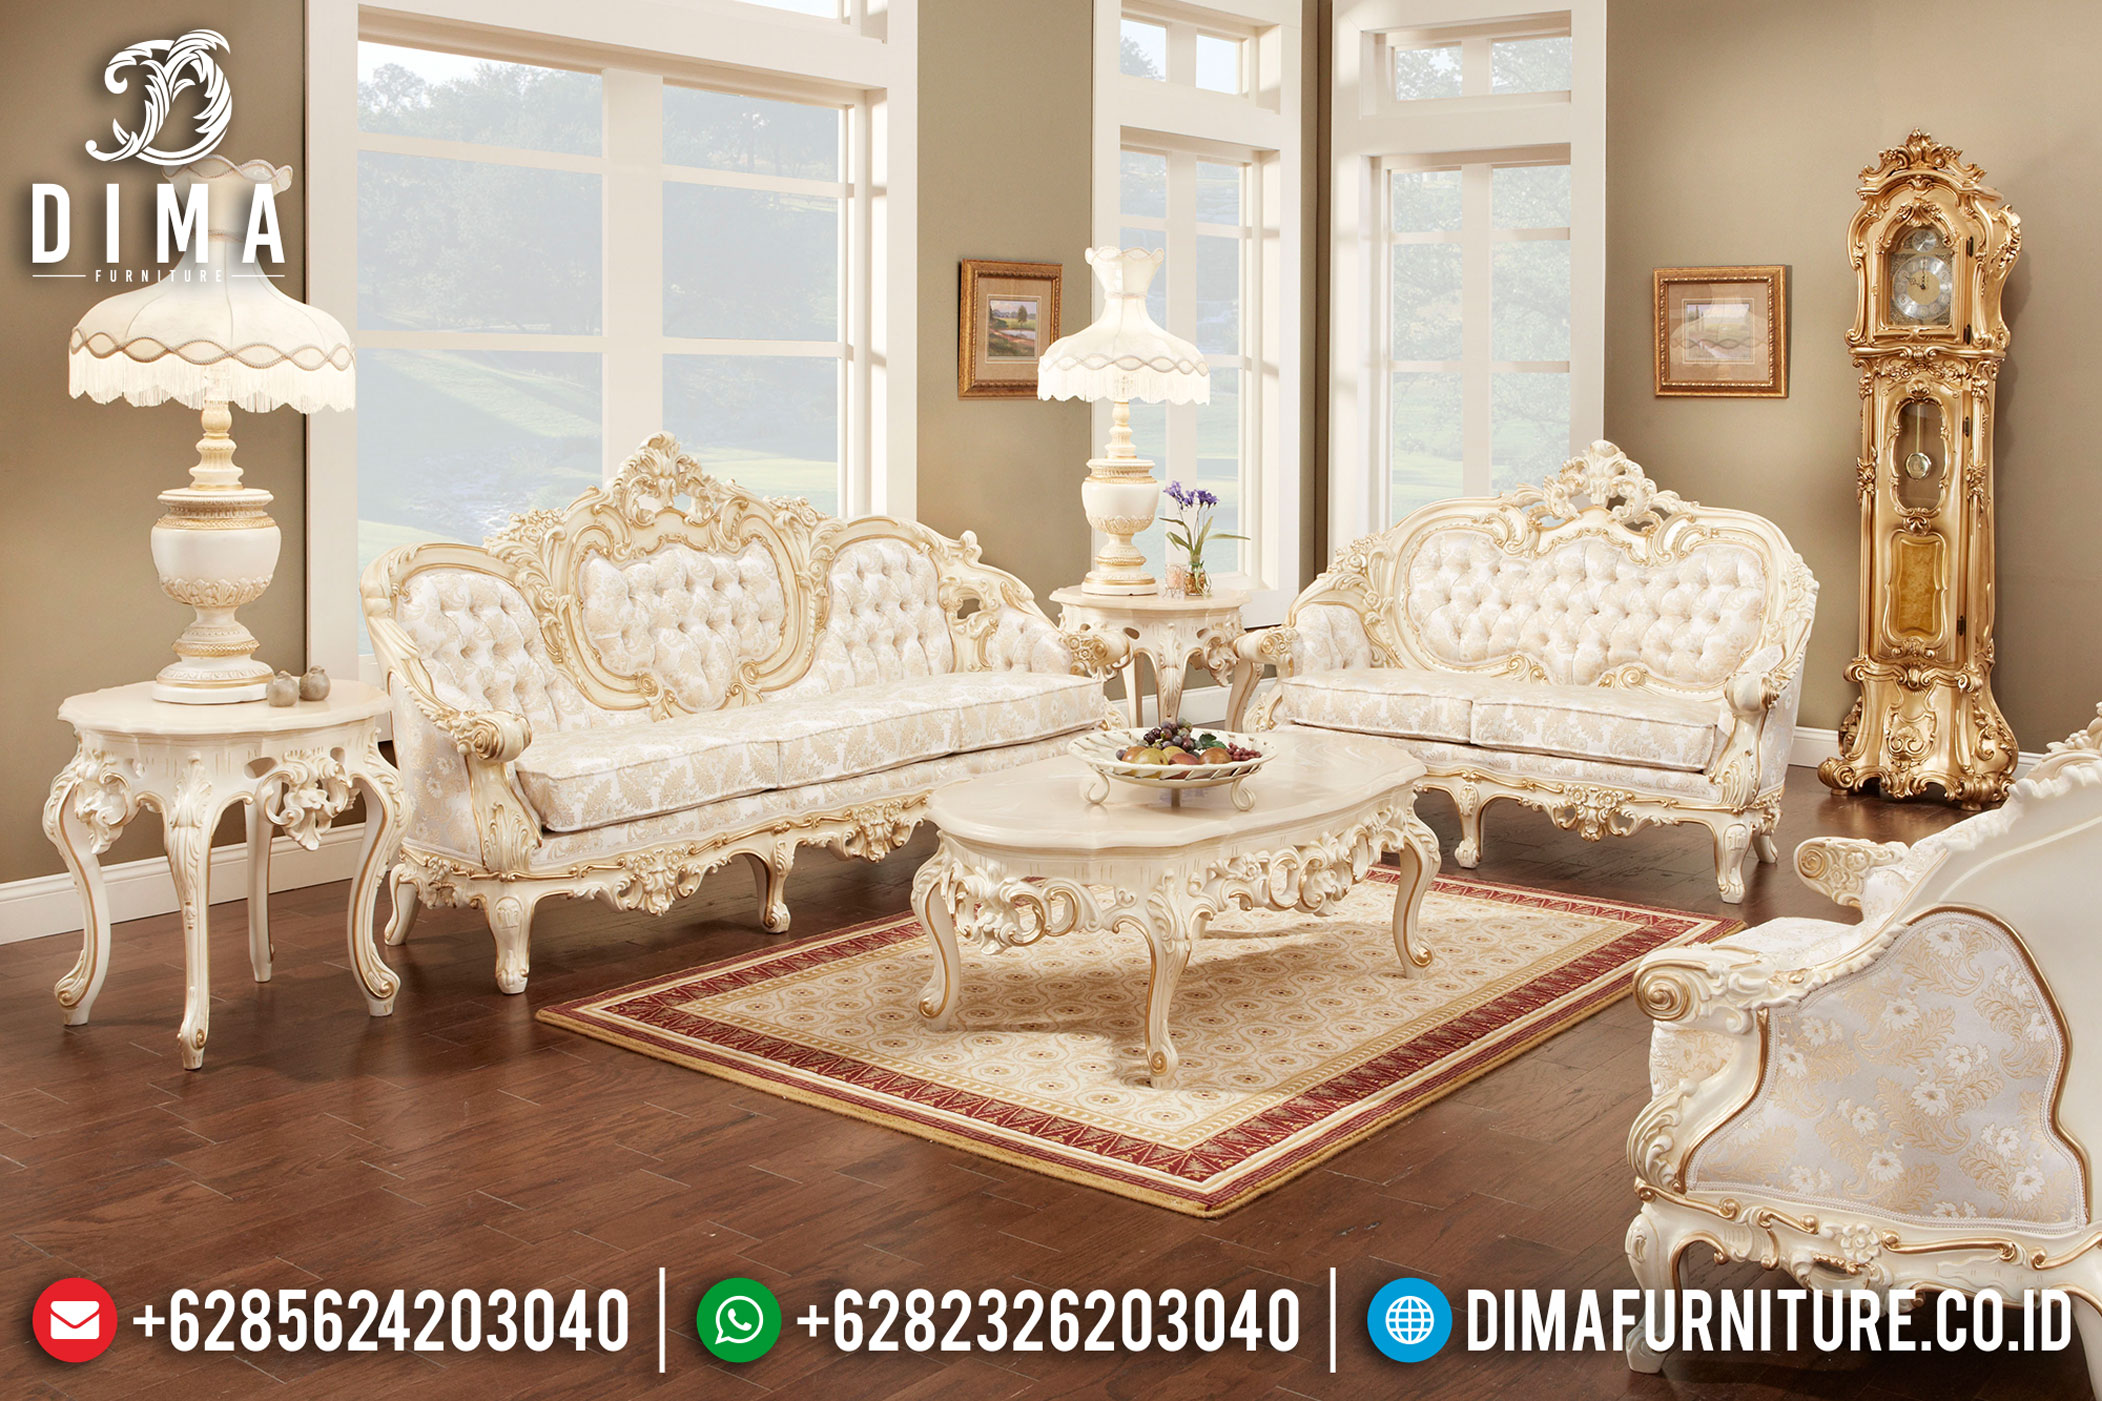 Model Sofa Tamu Jepara 2019-2020 008 Dima Furniture Jepara